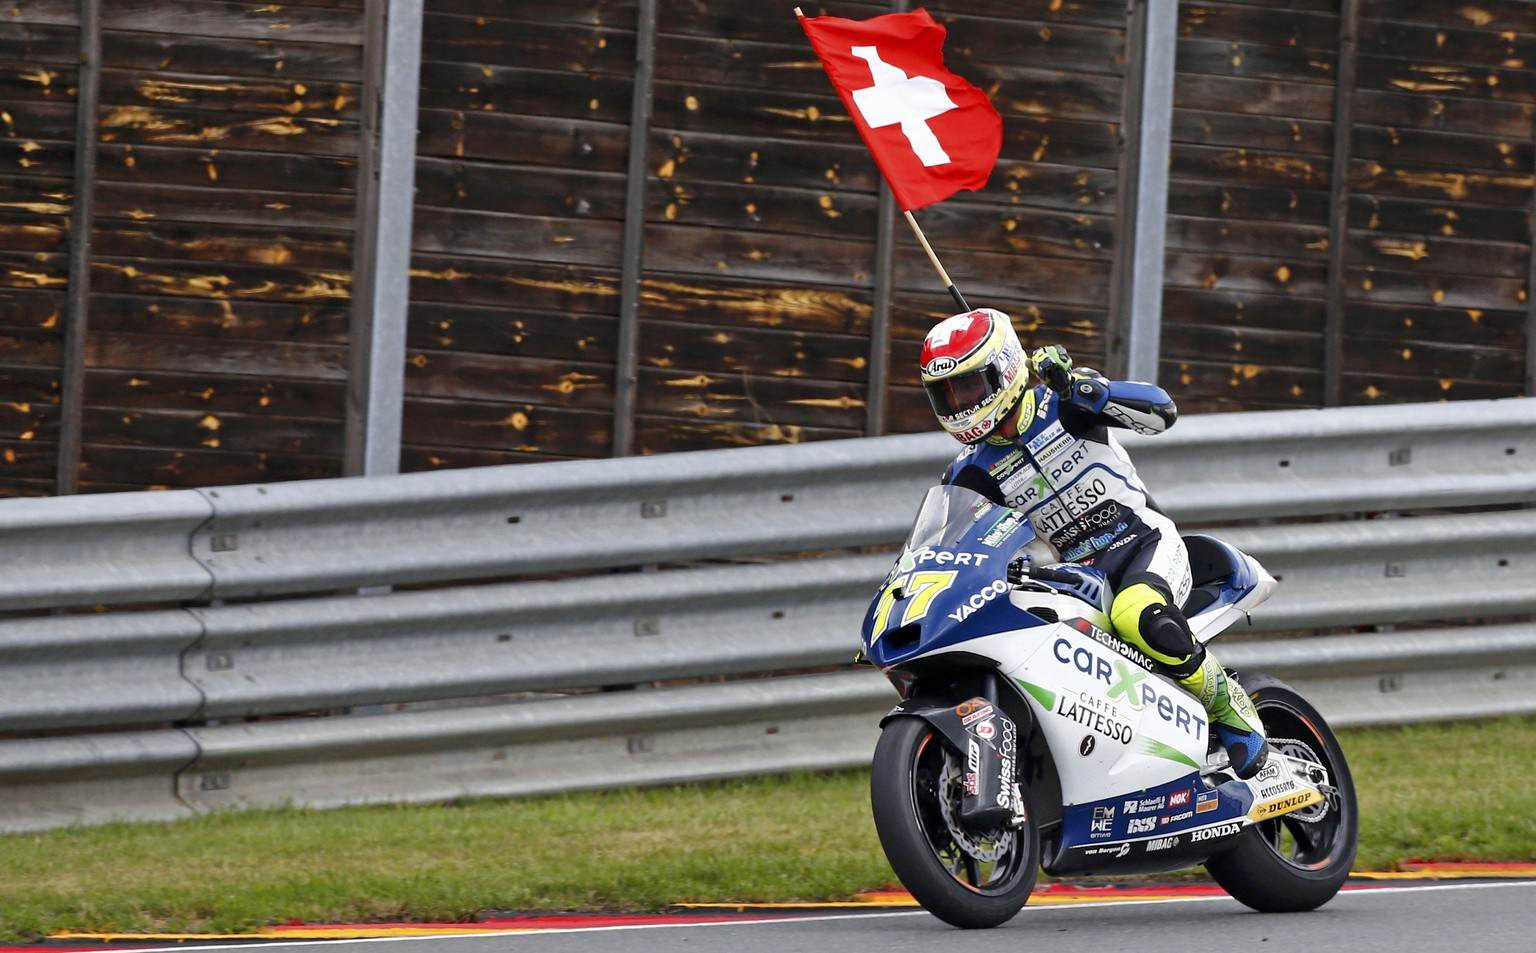 Winner Suter Moto2 rider Dominique Aegerter of Switzerland celebrates during the German Grand Prix at the Sachsenring circuit in the eastern German town of Hohenstein-Ernstthal July 13, 2014. REUTERS/Thomas Peter (GERMANY  - Tags: SPORT MOTORSPORT)